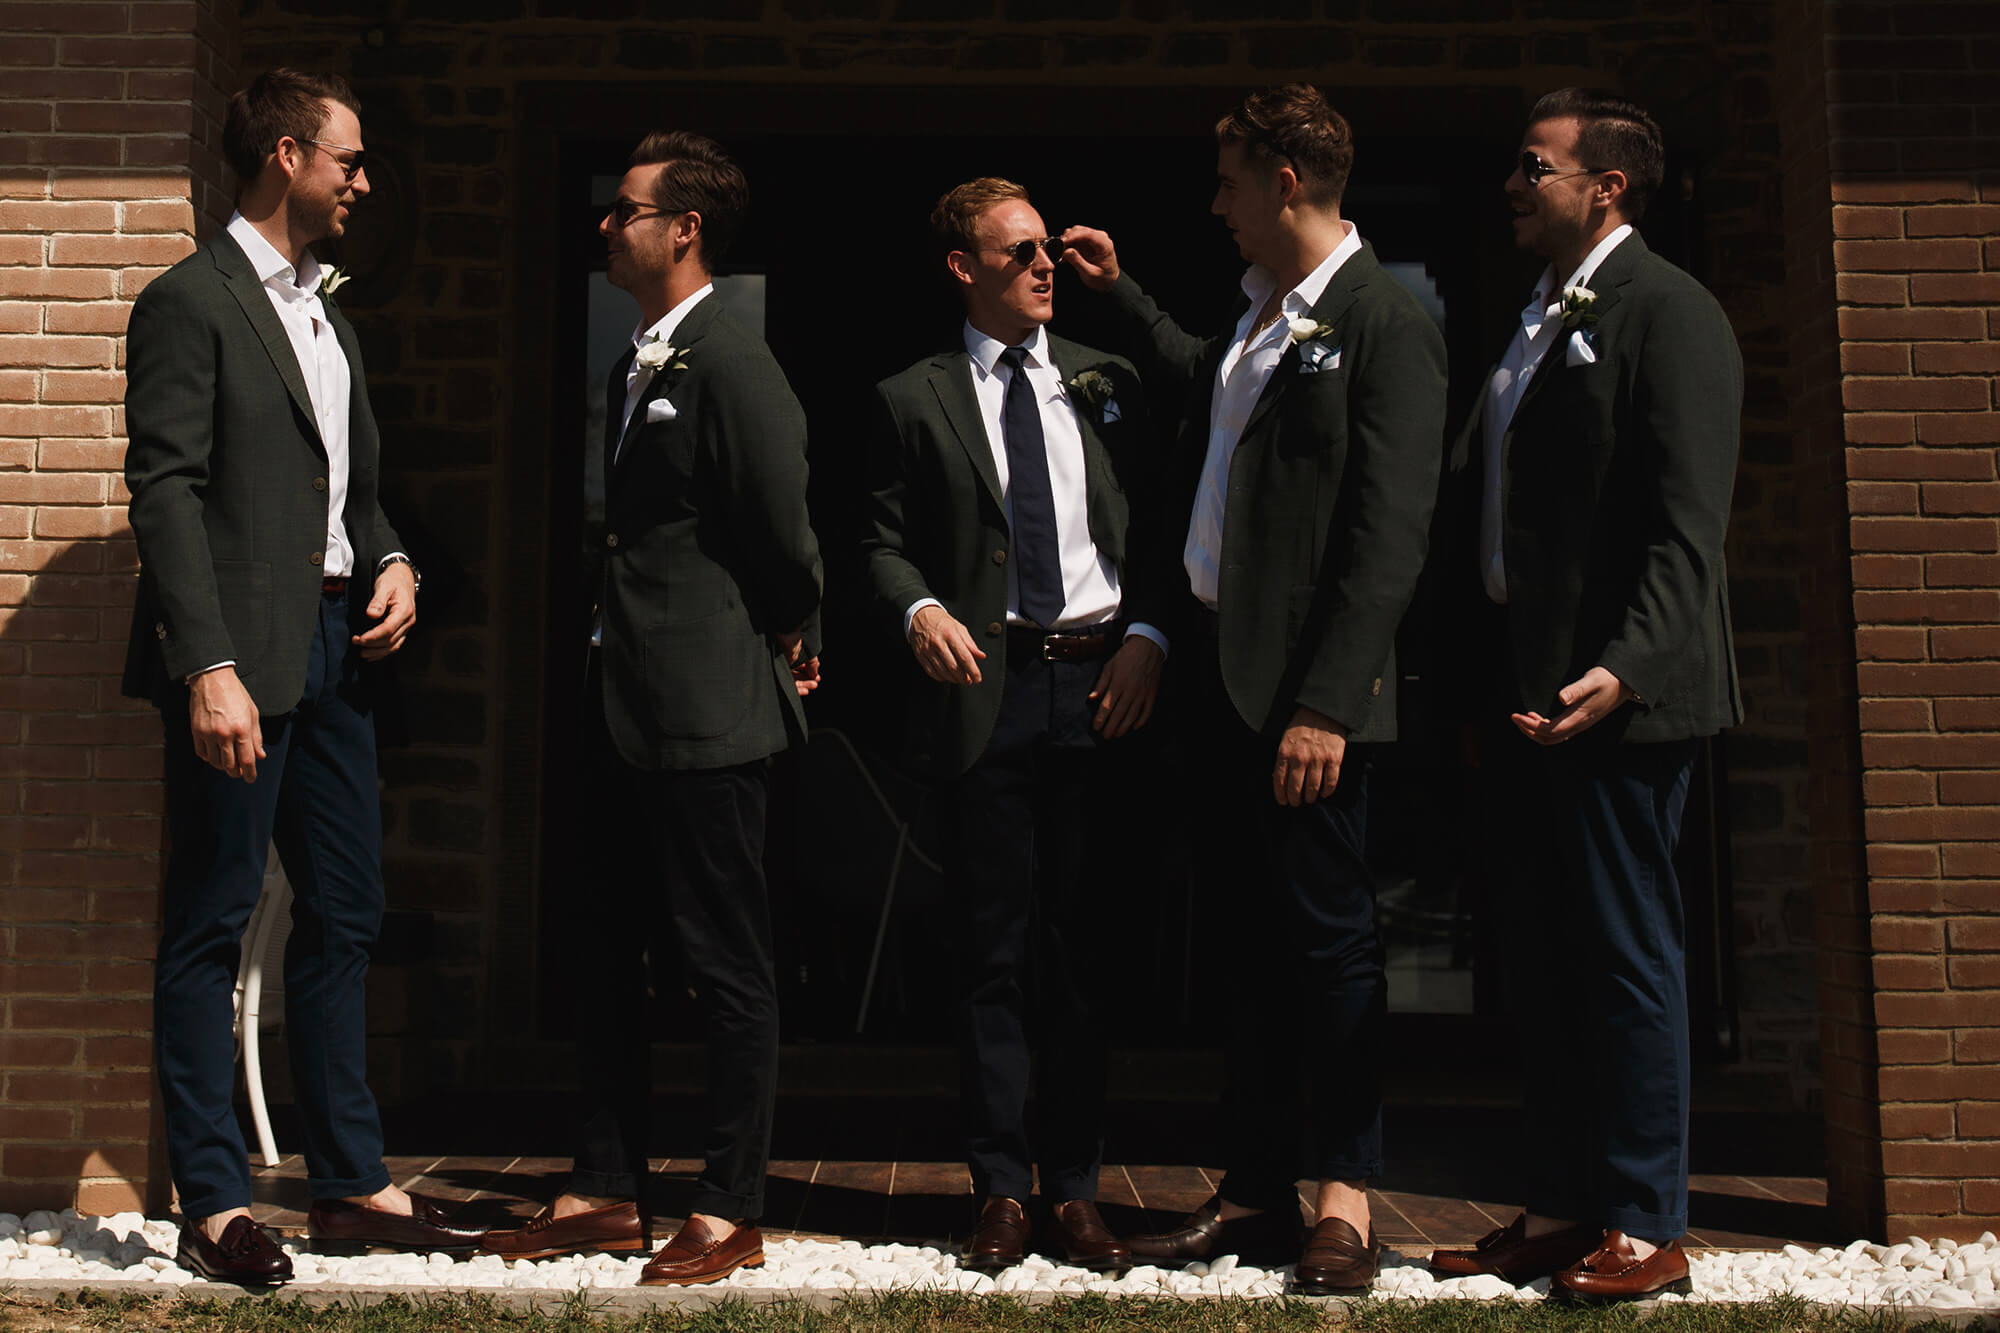 Groom with groomsmen in Tuscany